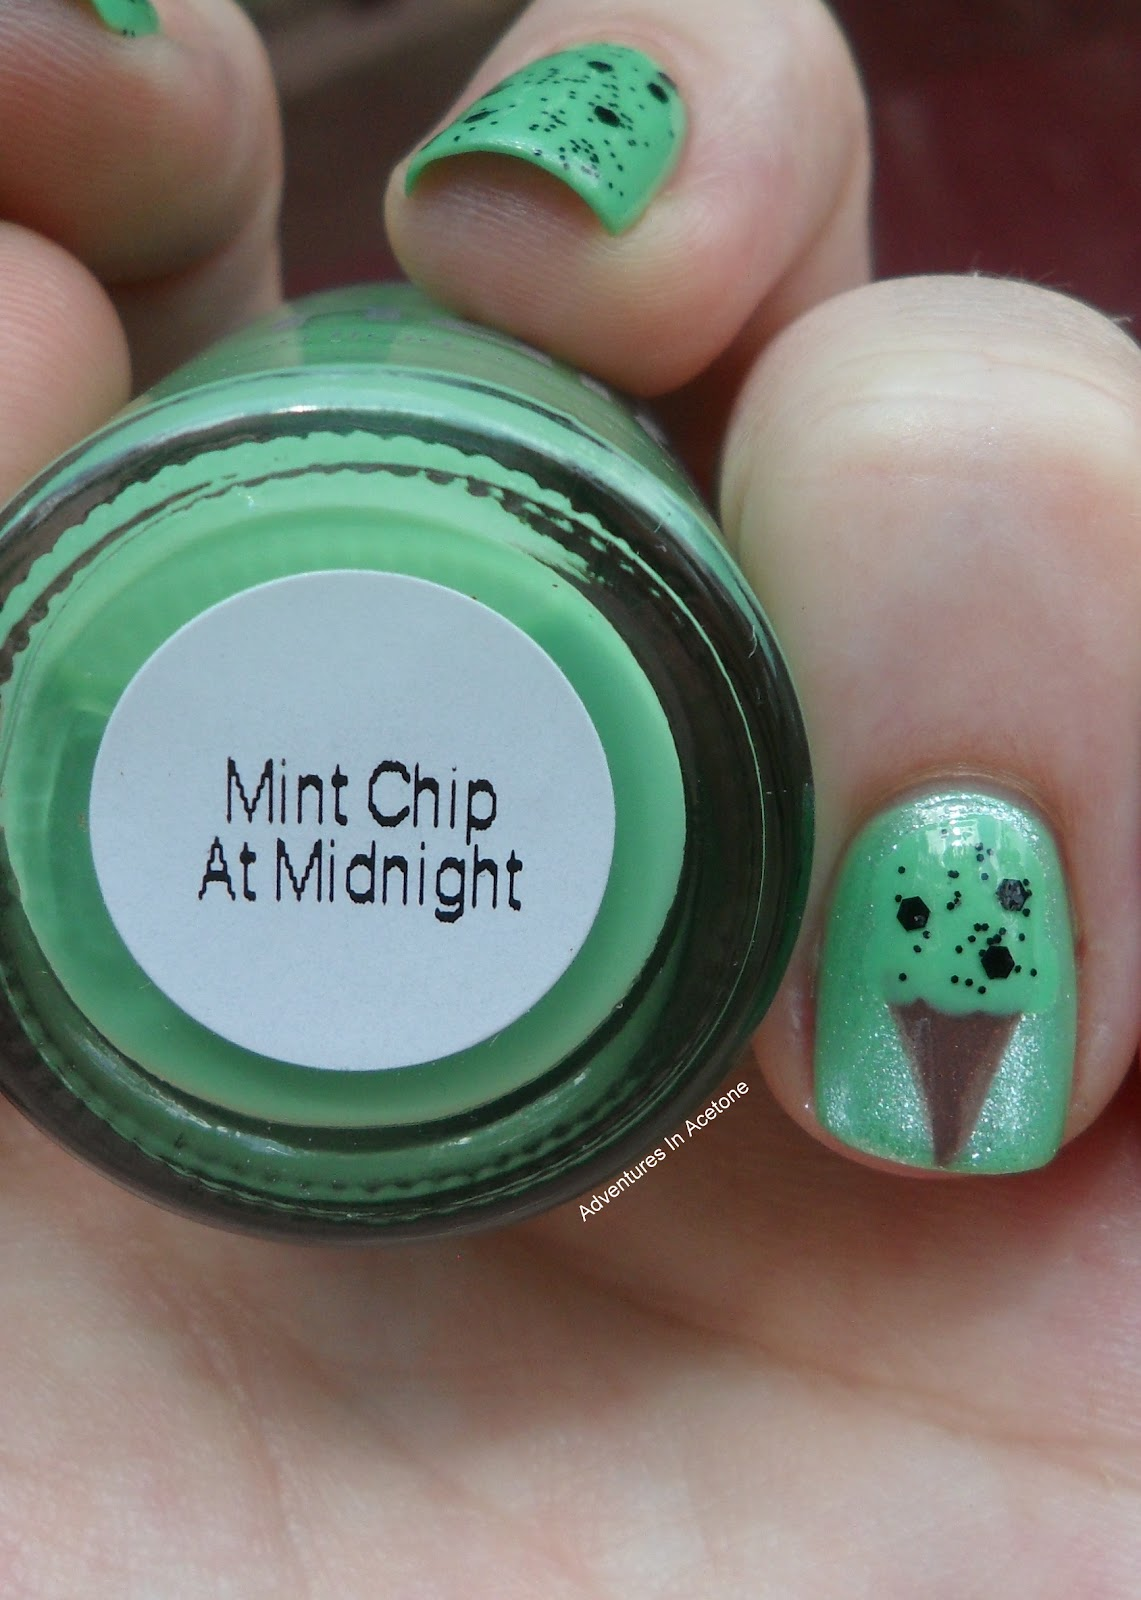 Knocked Up Nails: Mint Chip At Midnight - Adventures In Acetone